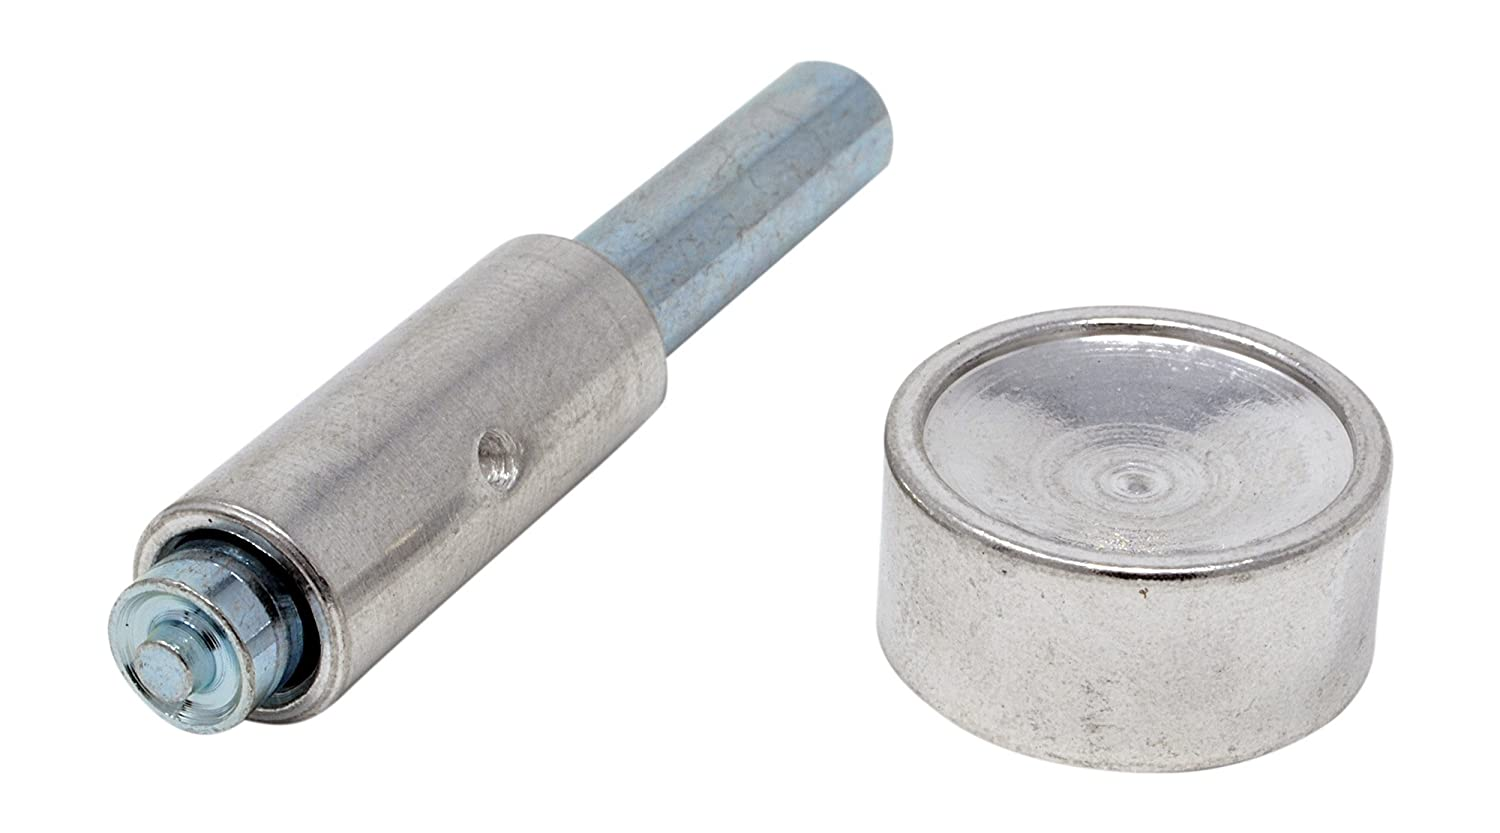 Upholstery Button Replacement Tool Www Topsimages Com